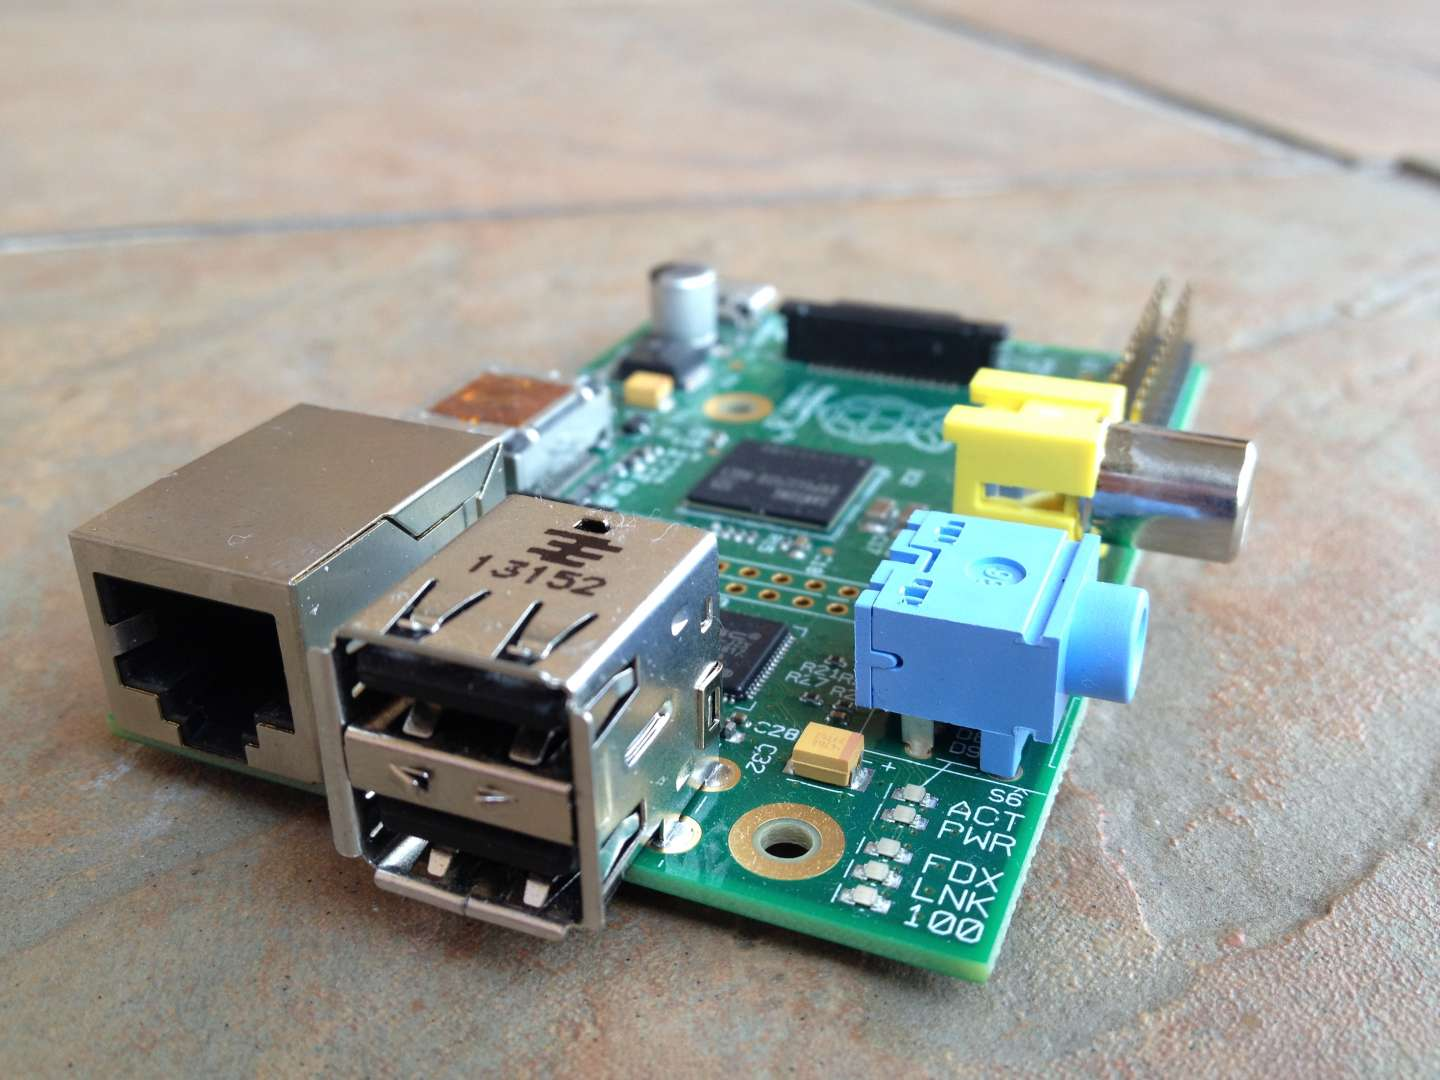 Raspberry Pi How to Install Kodi, Cost, Where to Buy, and Top 10 Uses